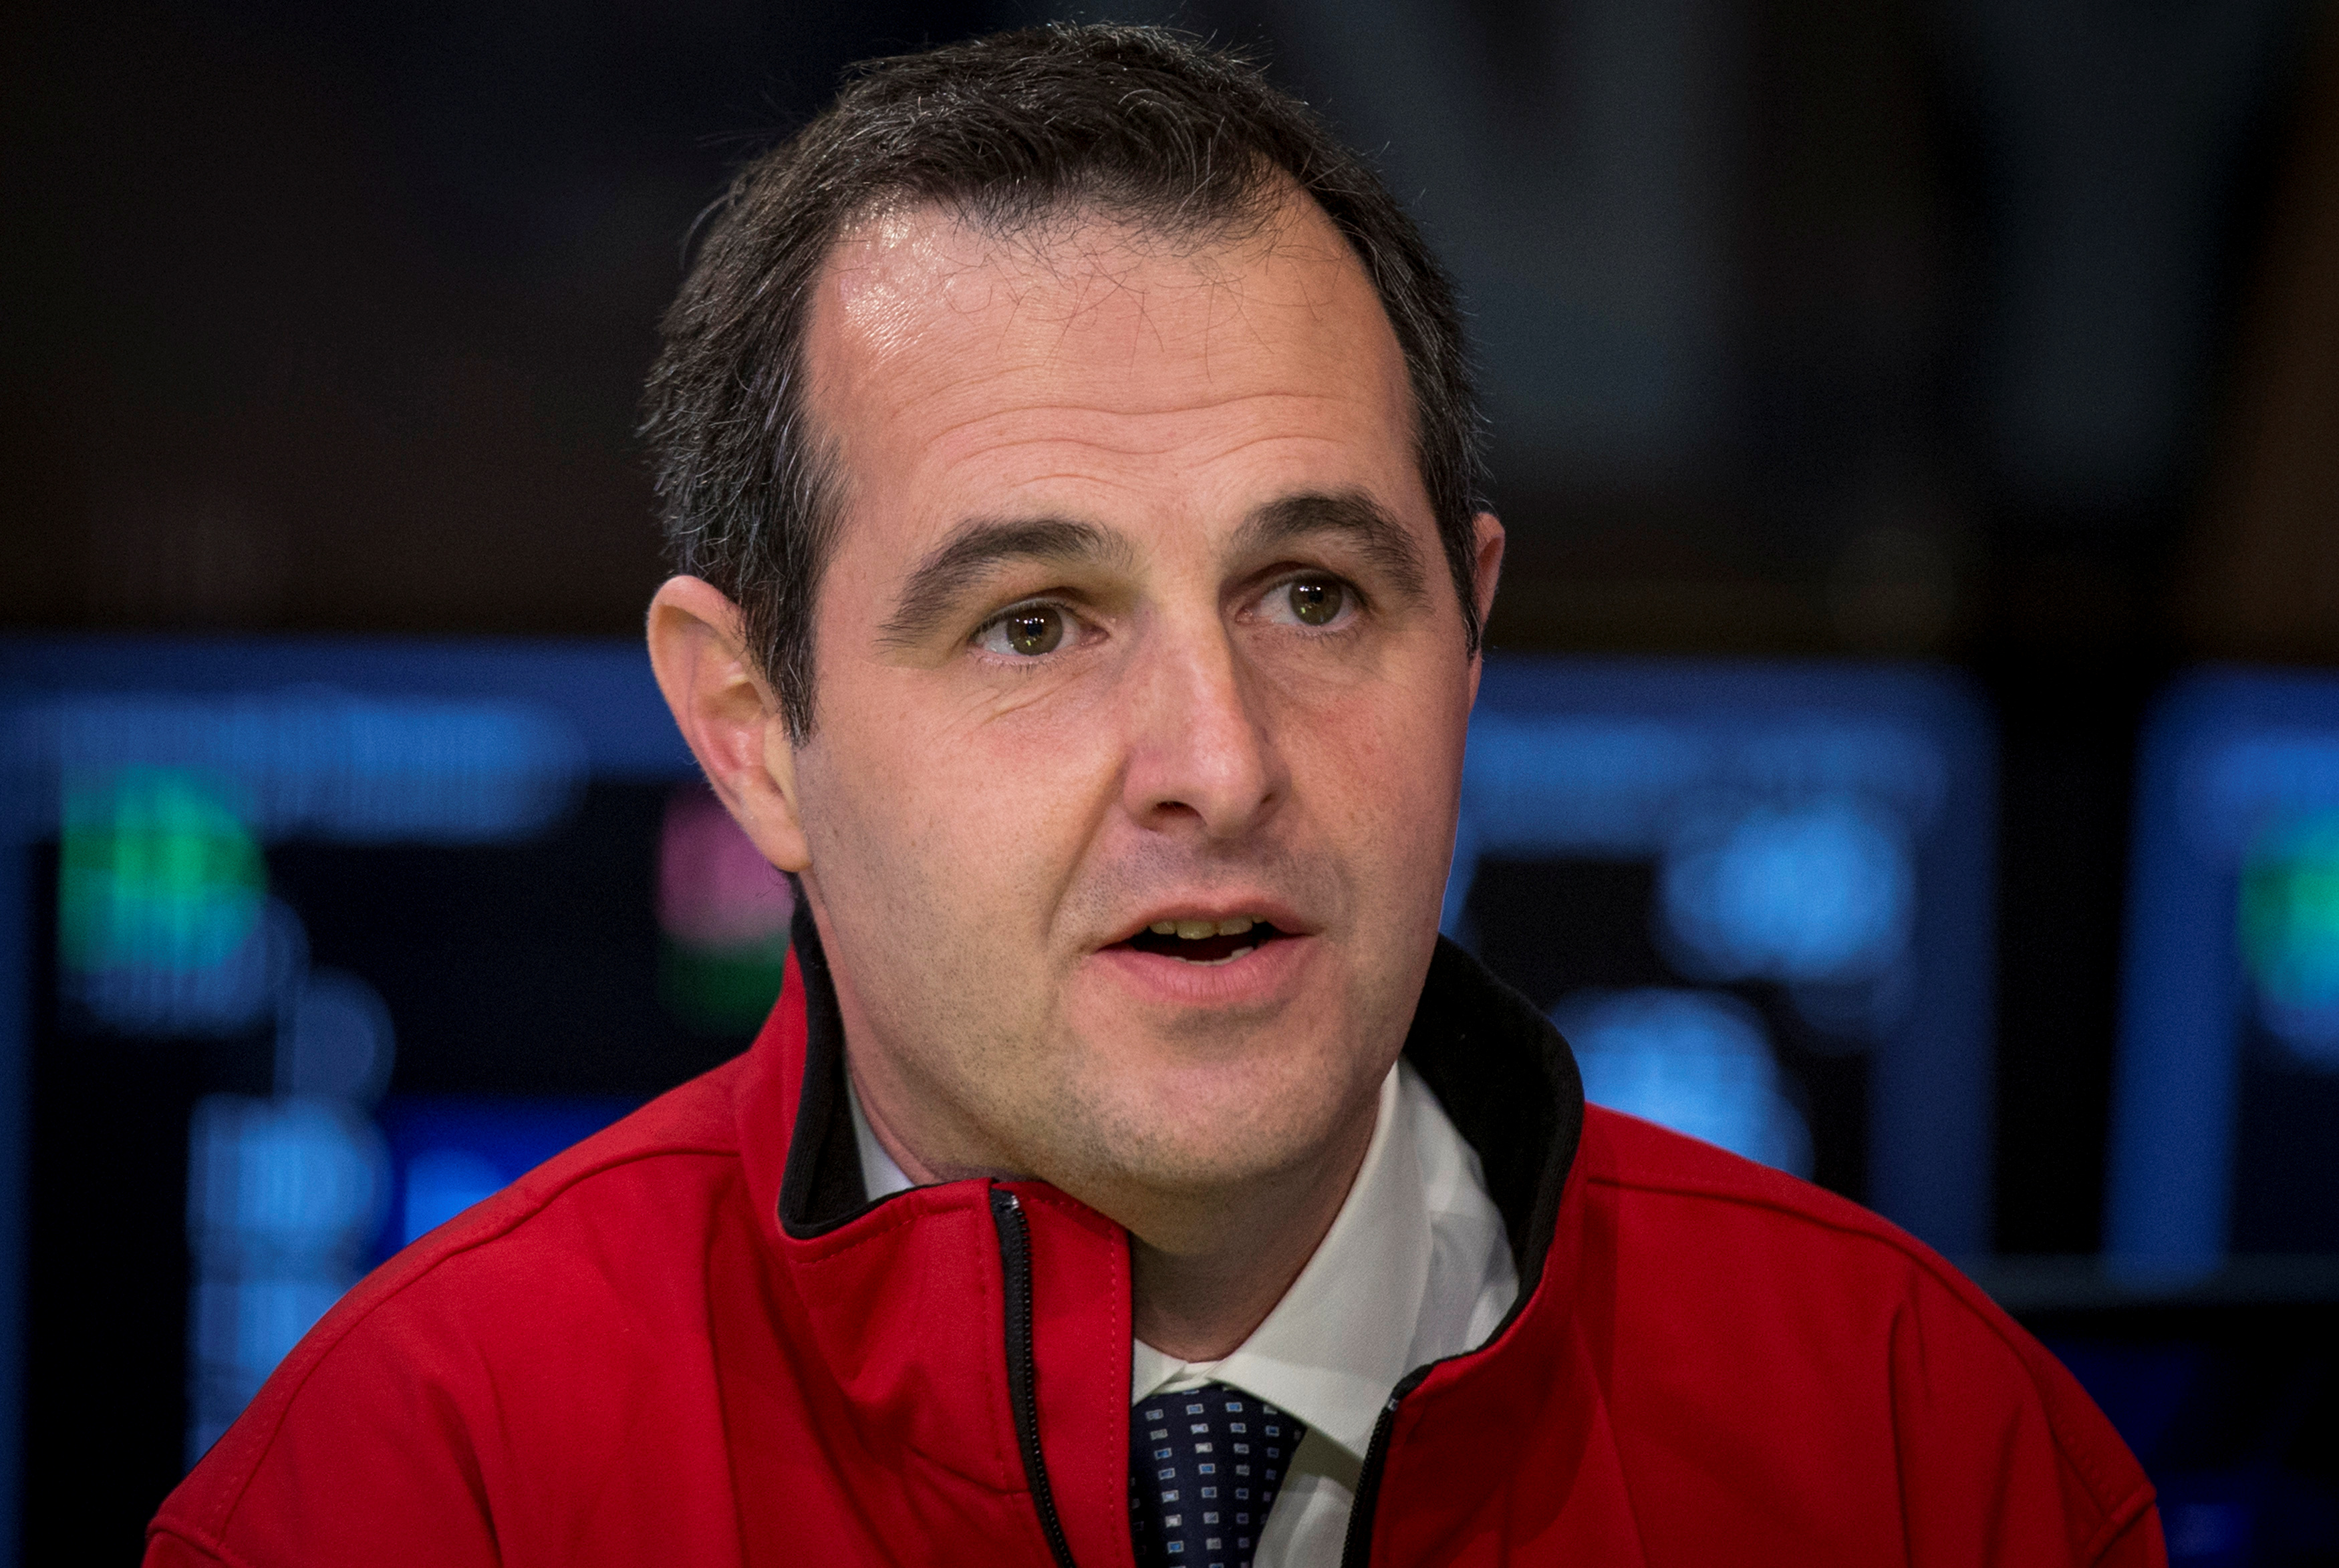 Ex-Lending Club CEO's new gig offers similar tests